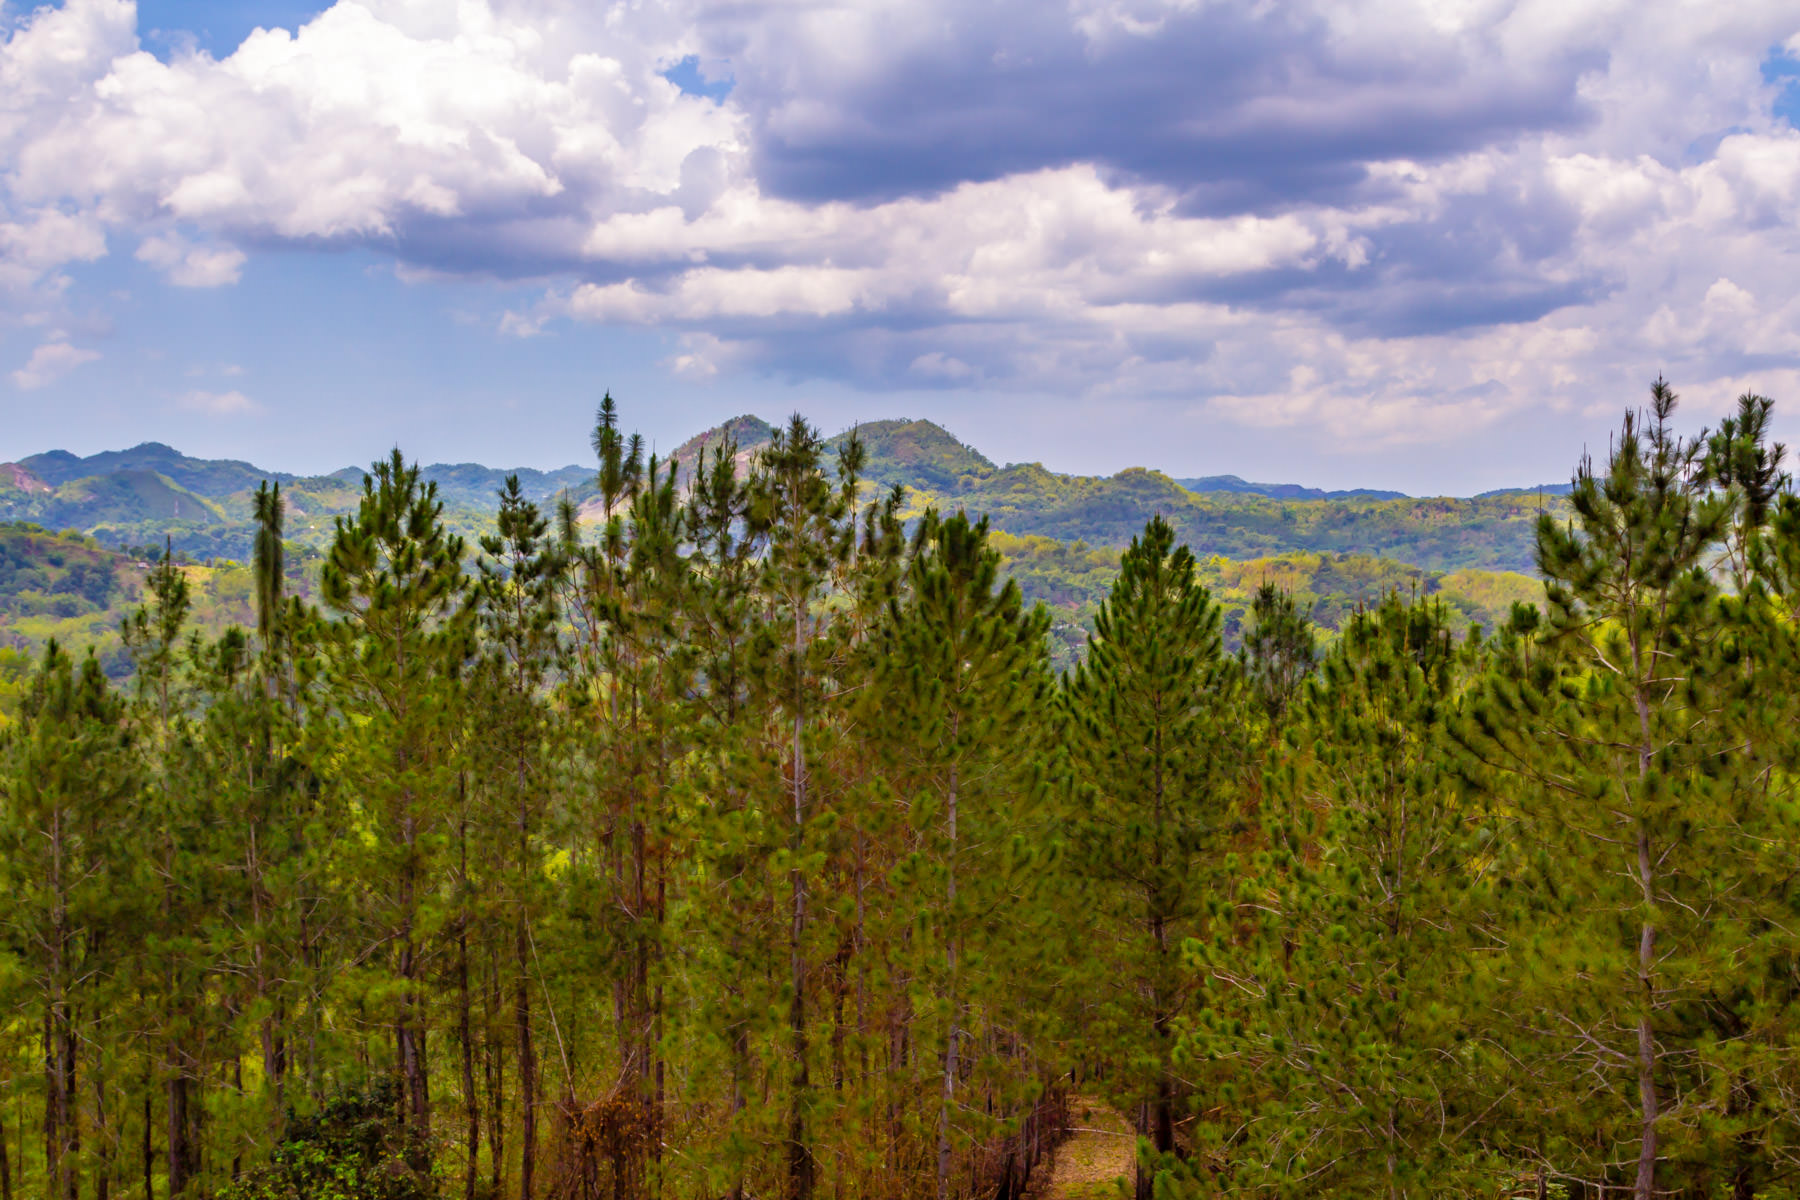 Pine trees grow at the Croydon in the Mountains plantation in northwest Jamaica.